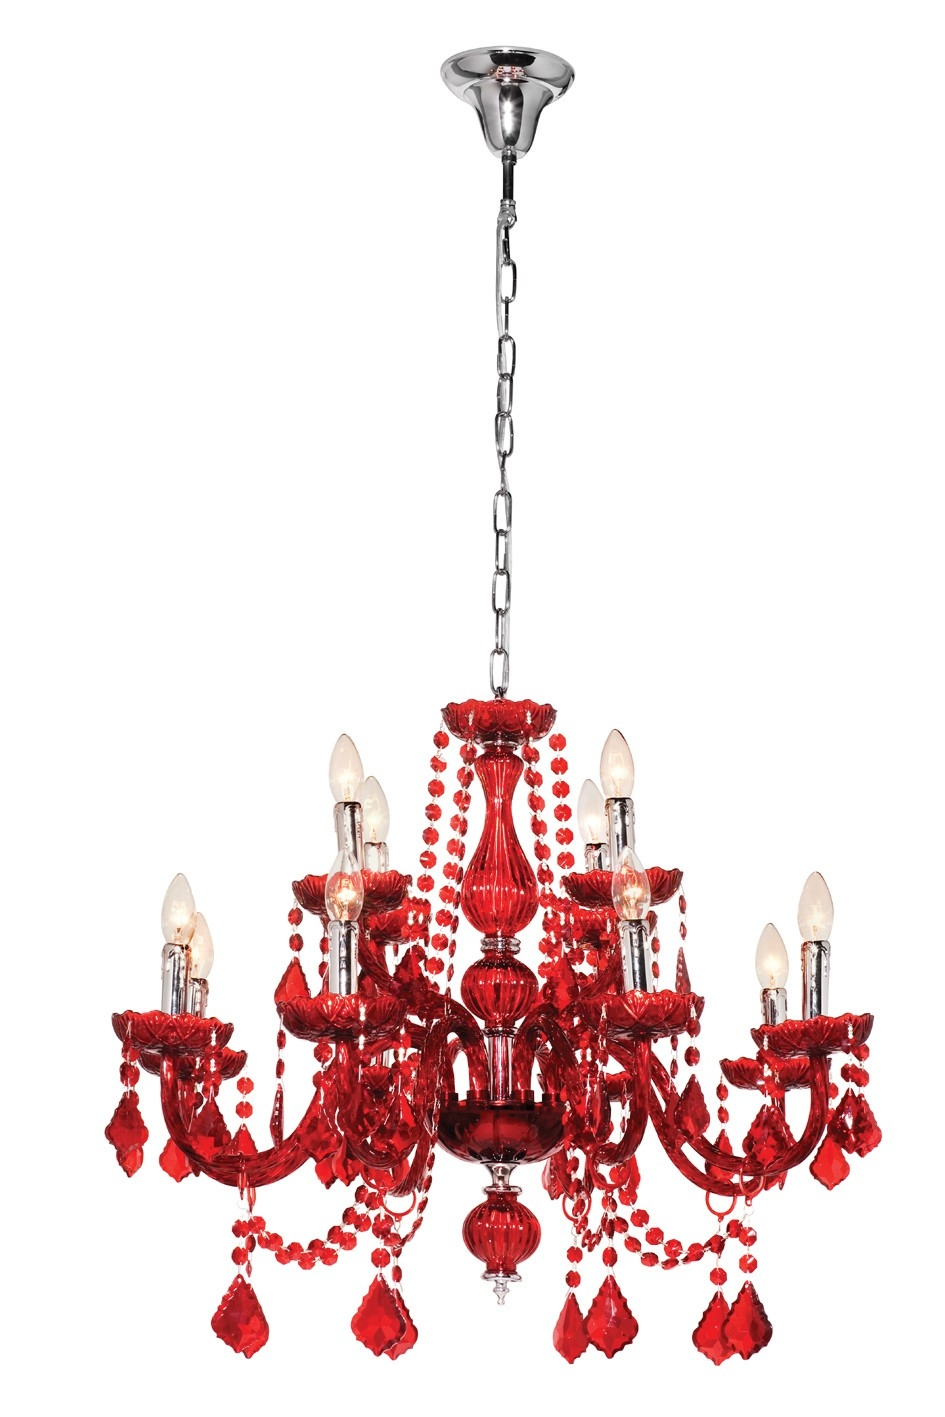 Fabulous Red Chandelier On Modern Home Interior Design Ideas With With Regard To Modern Red Chandelier (#4 of 12)